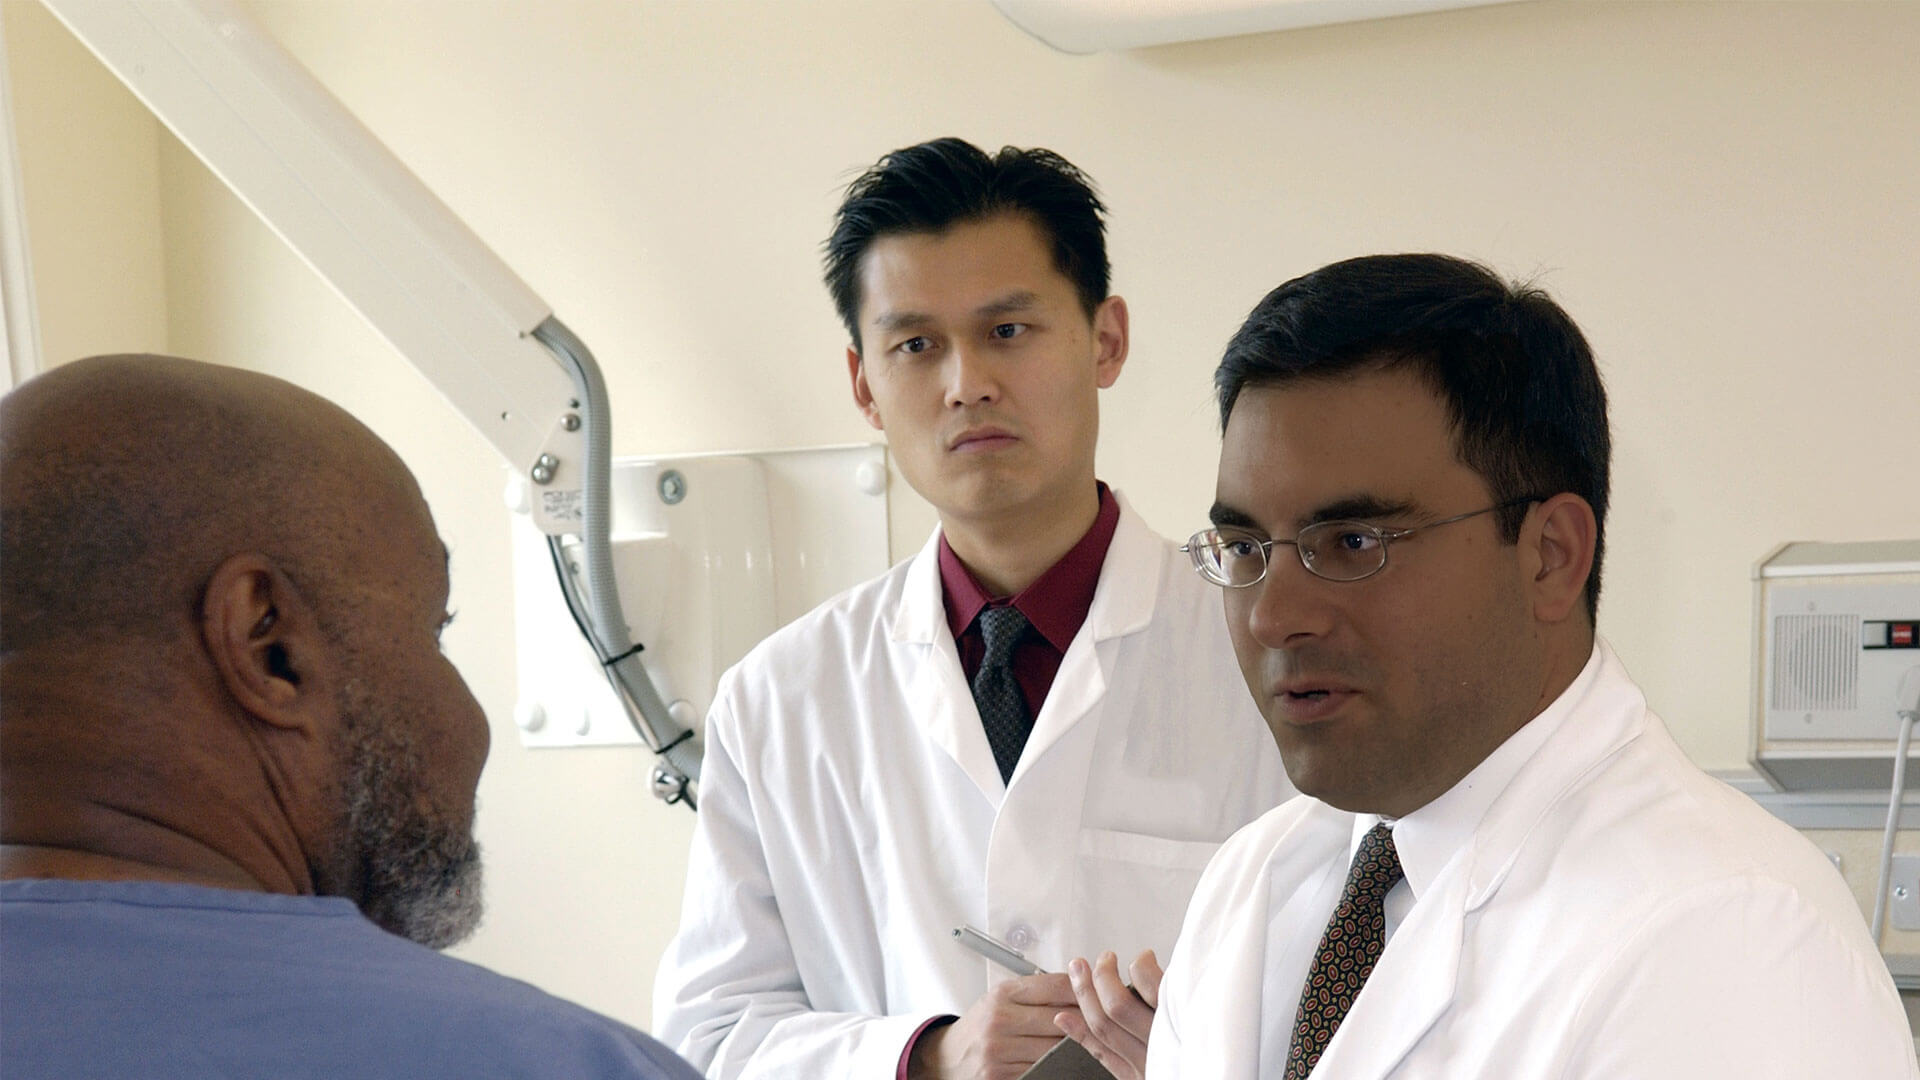 Doctors in a room with patient